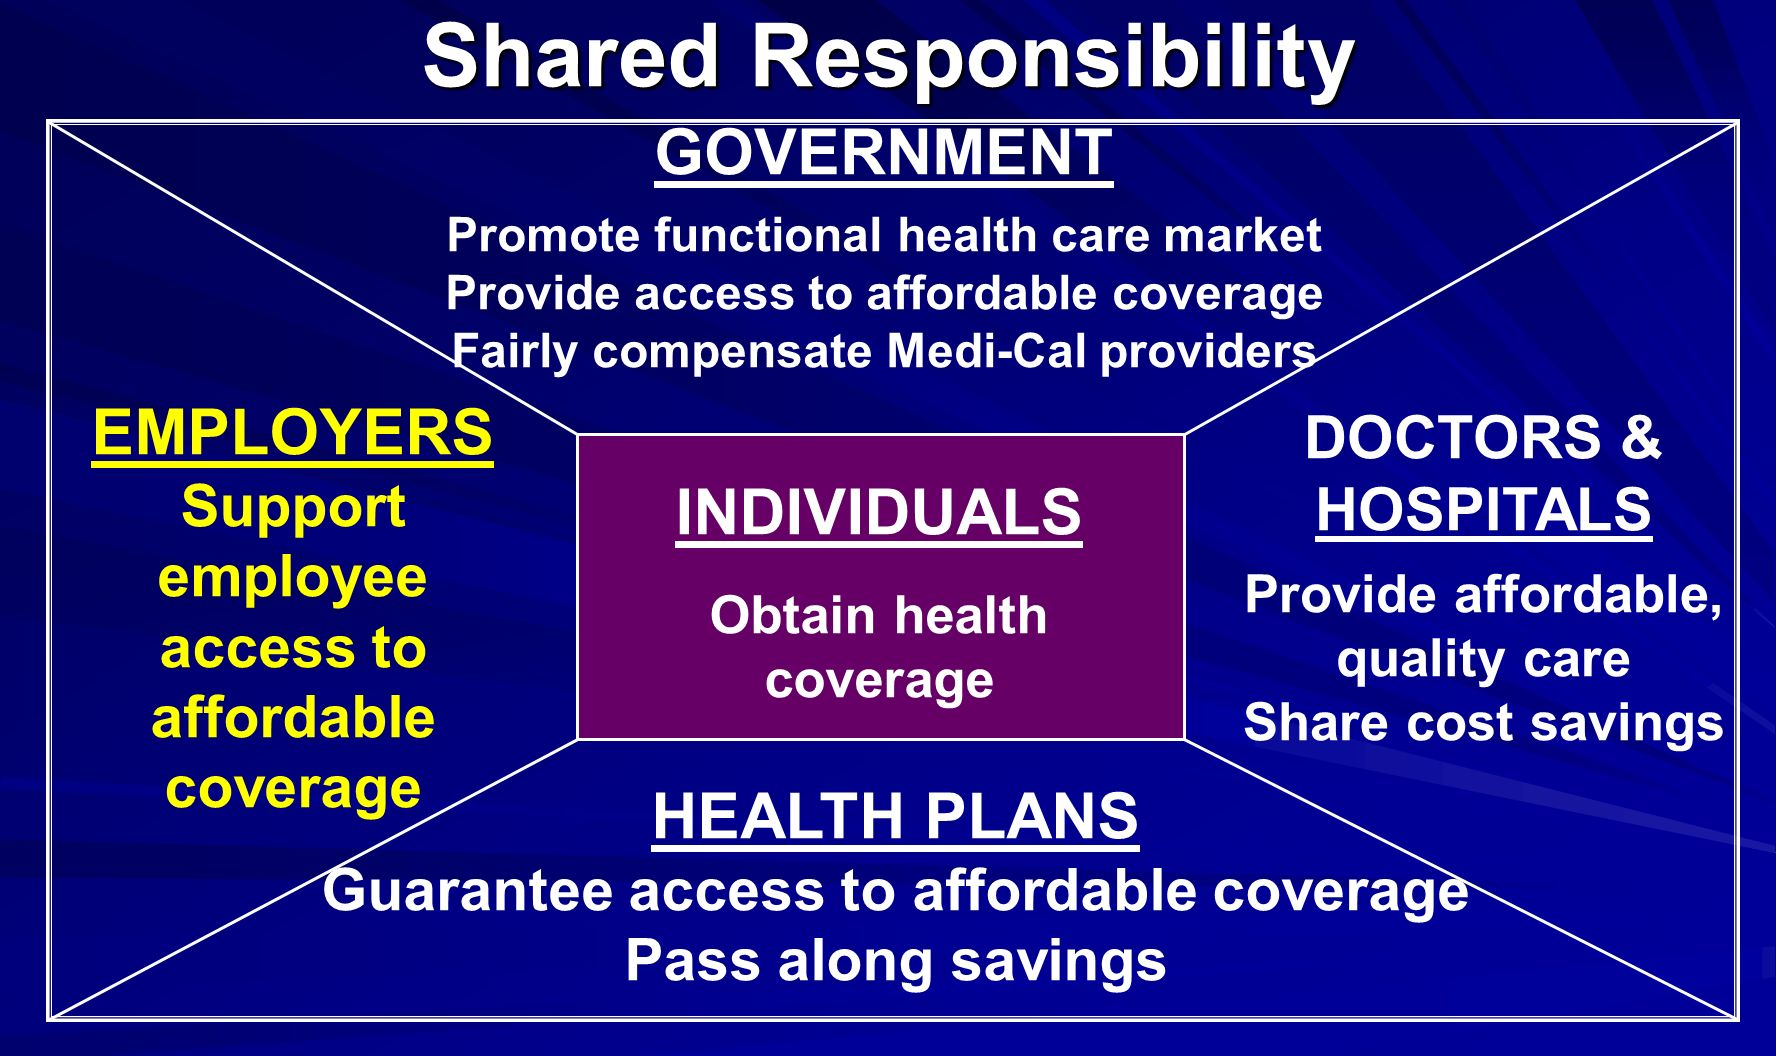 Shared Responsibility EMPLOYERS Support employee access to affordable coverage DOCTORS & HOSPITALS Provide affordable, quality care Share cost savings GOVERNMENT Promote functional health care market Provide access to affordable coverage Fairly compensate Medi-Cal providers INDIVIDUALS Obtain health coverage HEALTH PLANS Guarantee access to affordable coverage Pass along savings